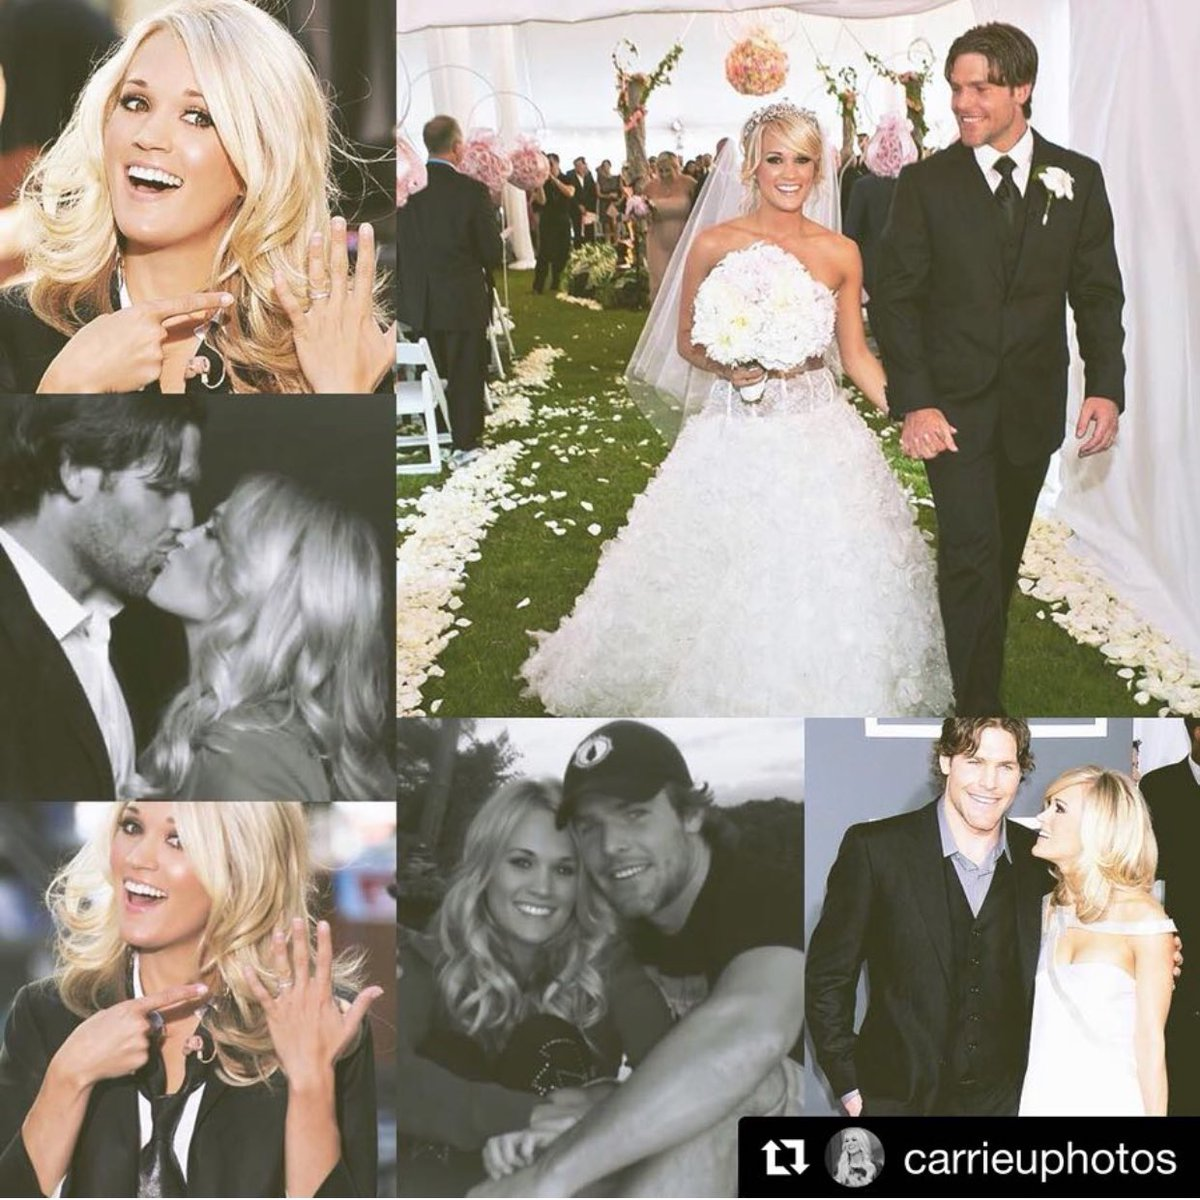 Fisherfan1212 On Twitter Rp Carrieuphotos Carrie Mike Got